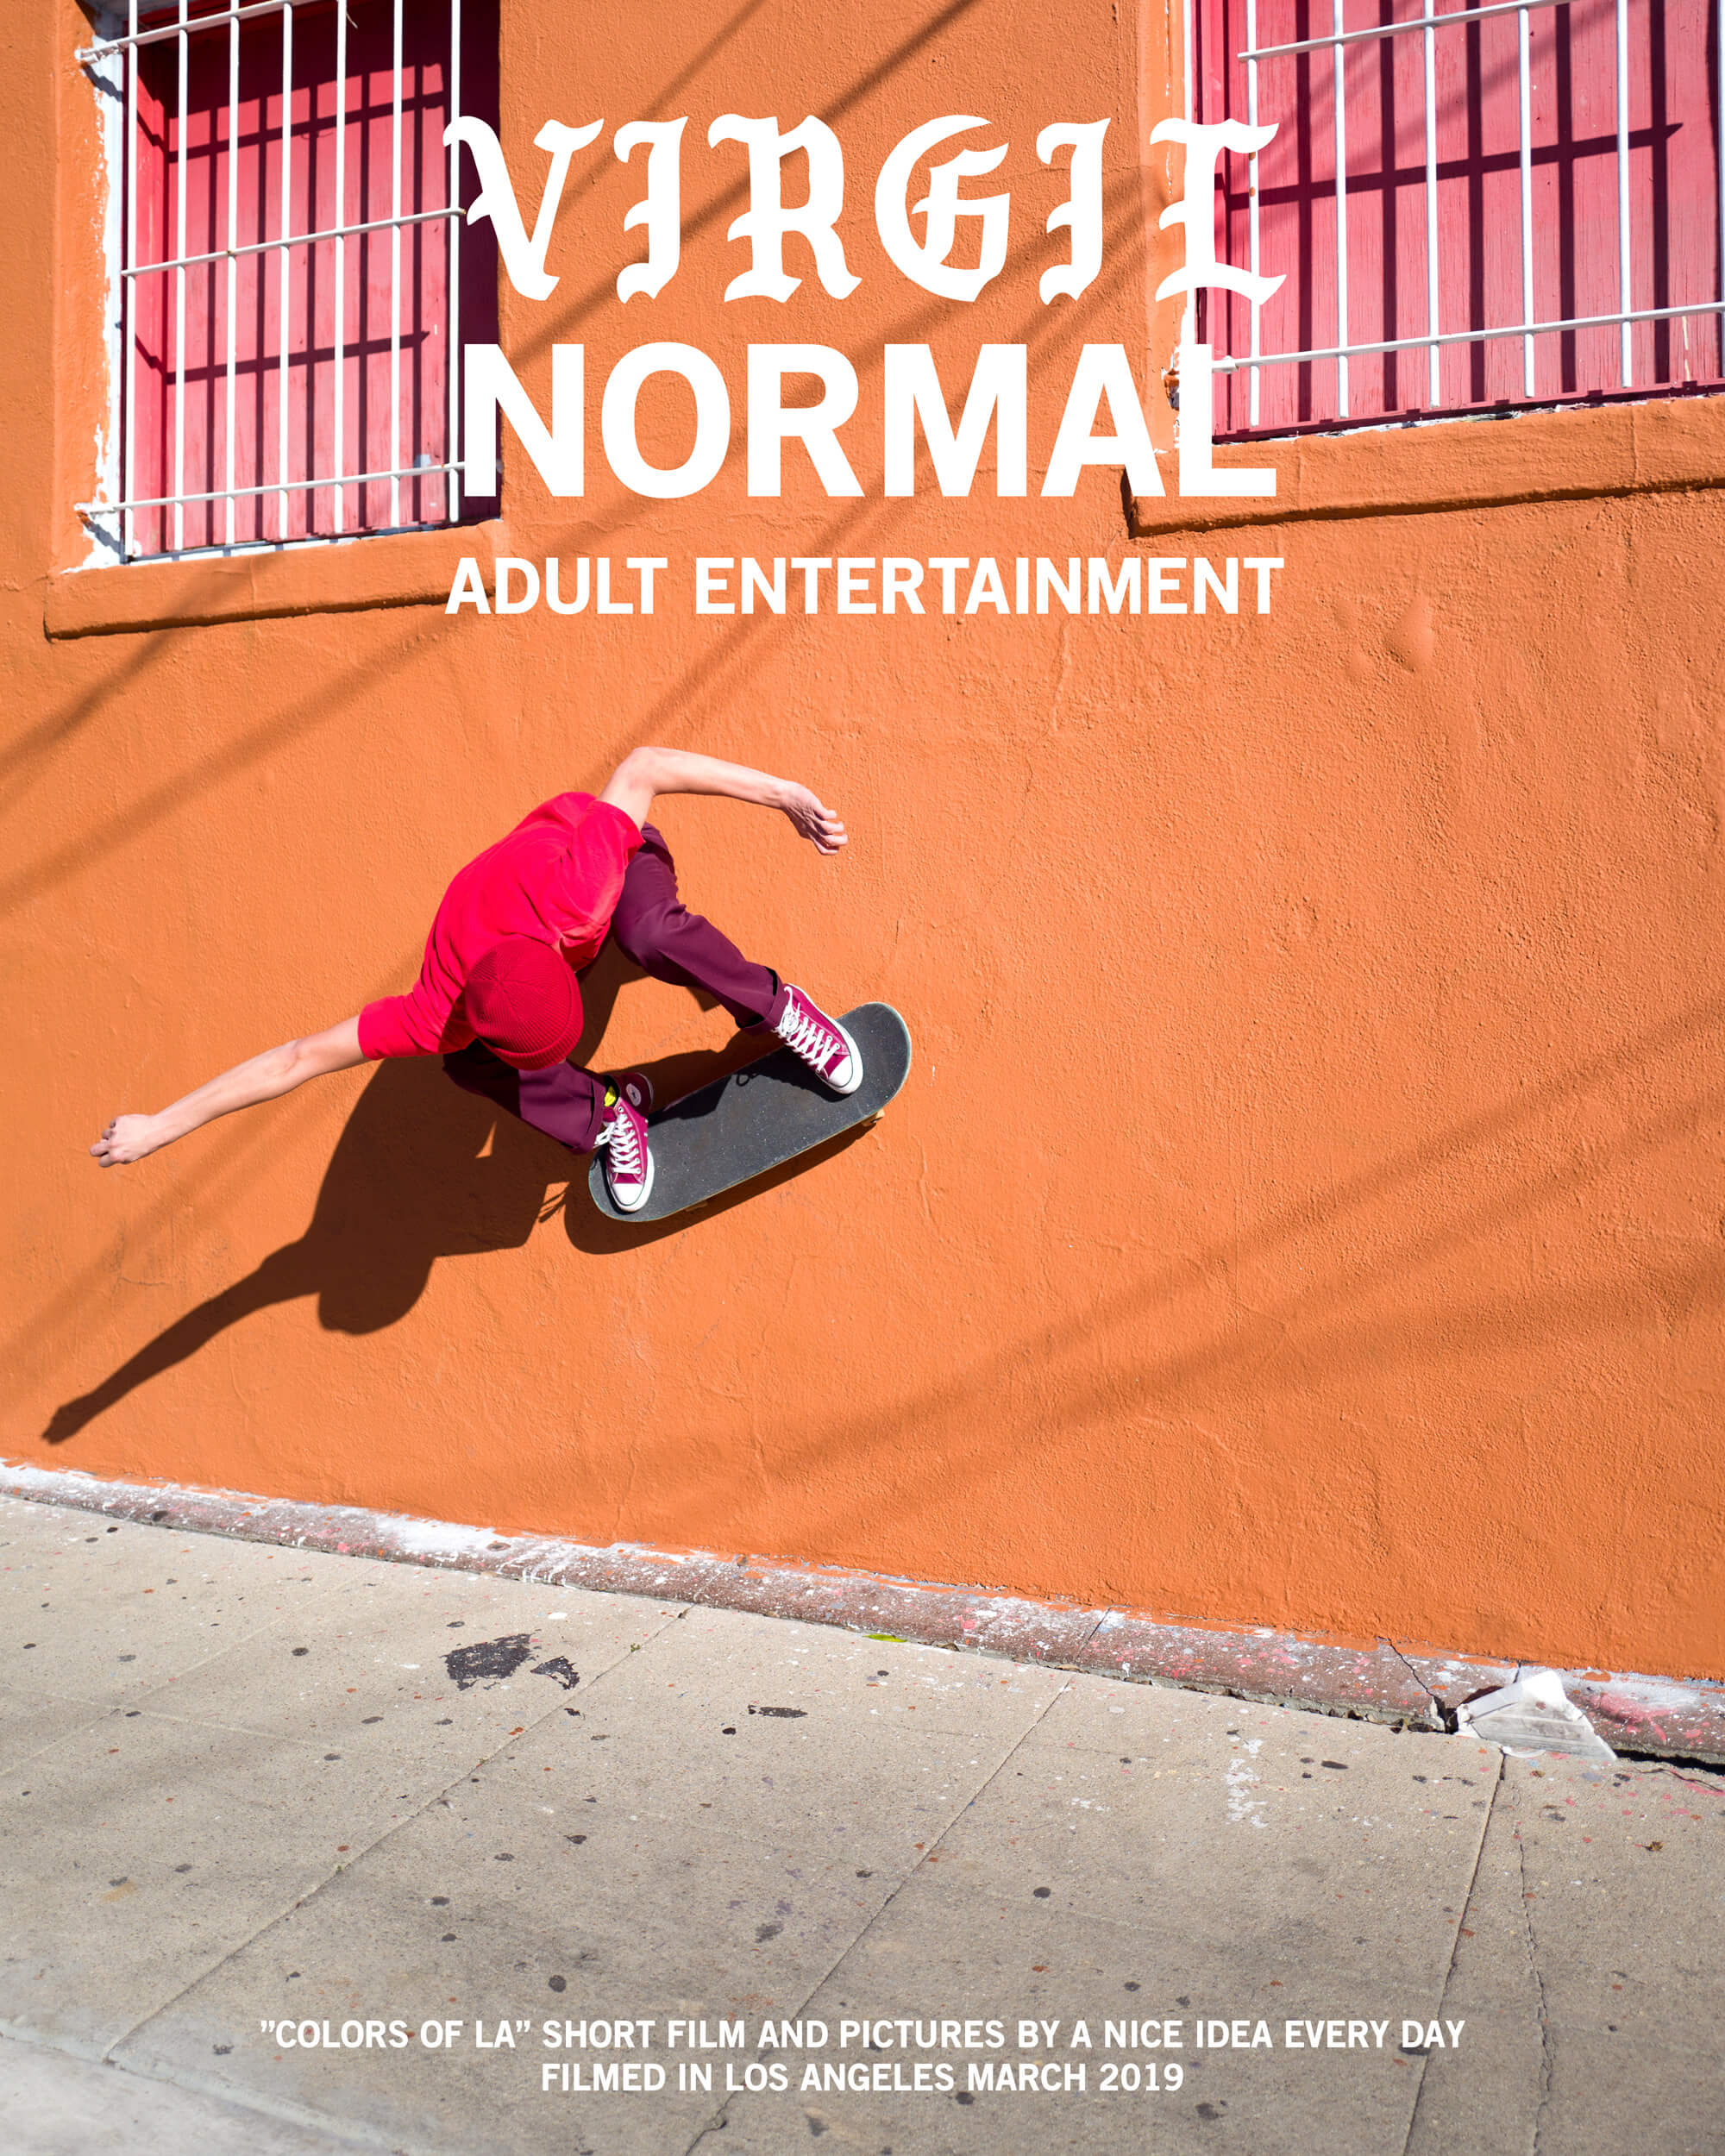 A short film for Virgil Normal : A Nice Idea Every Day